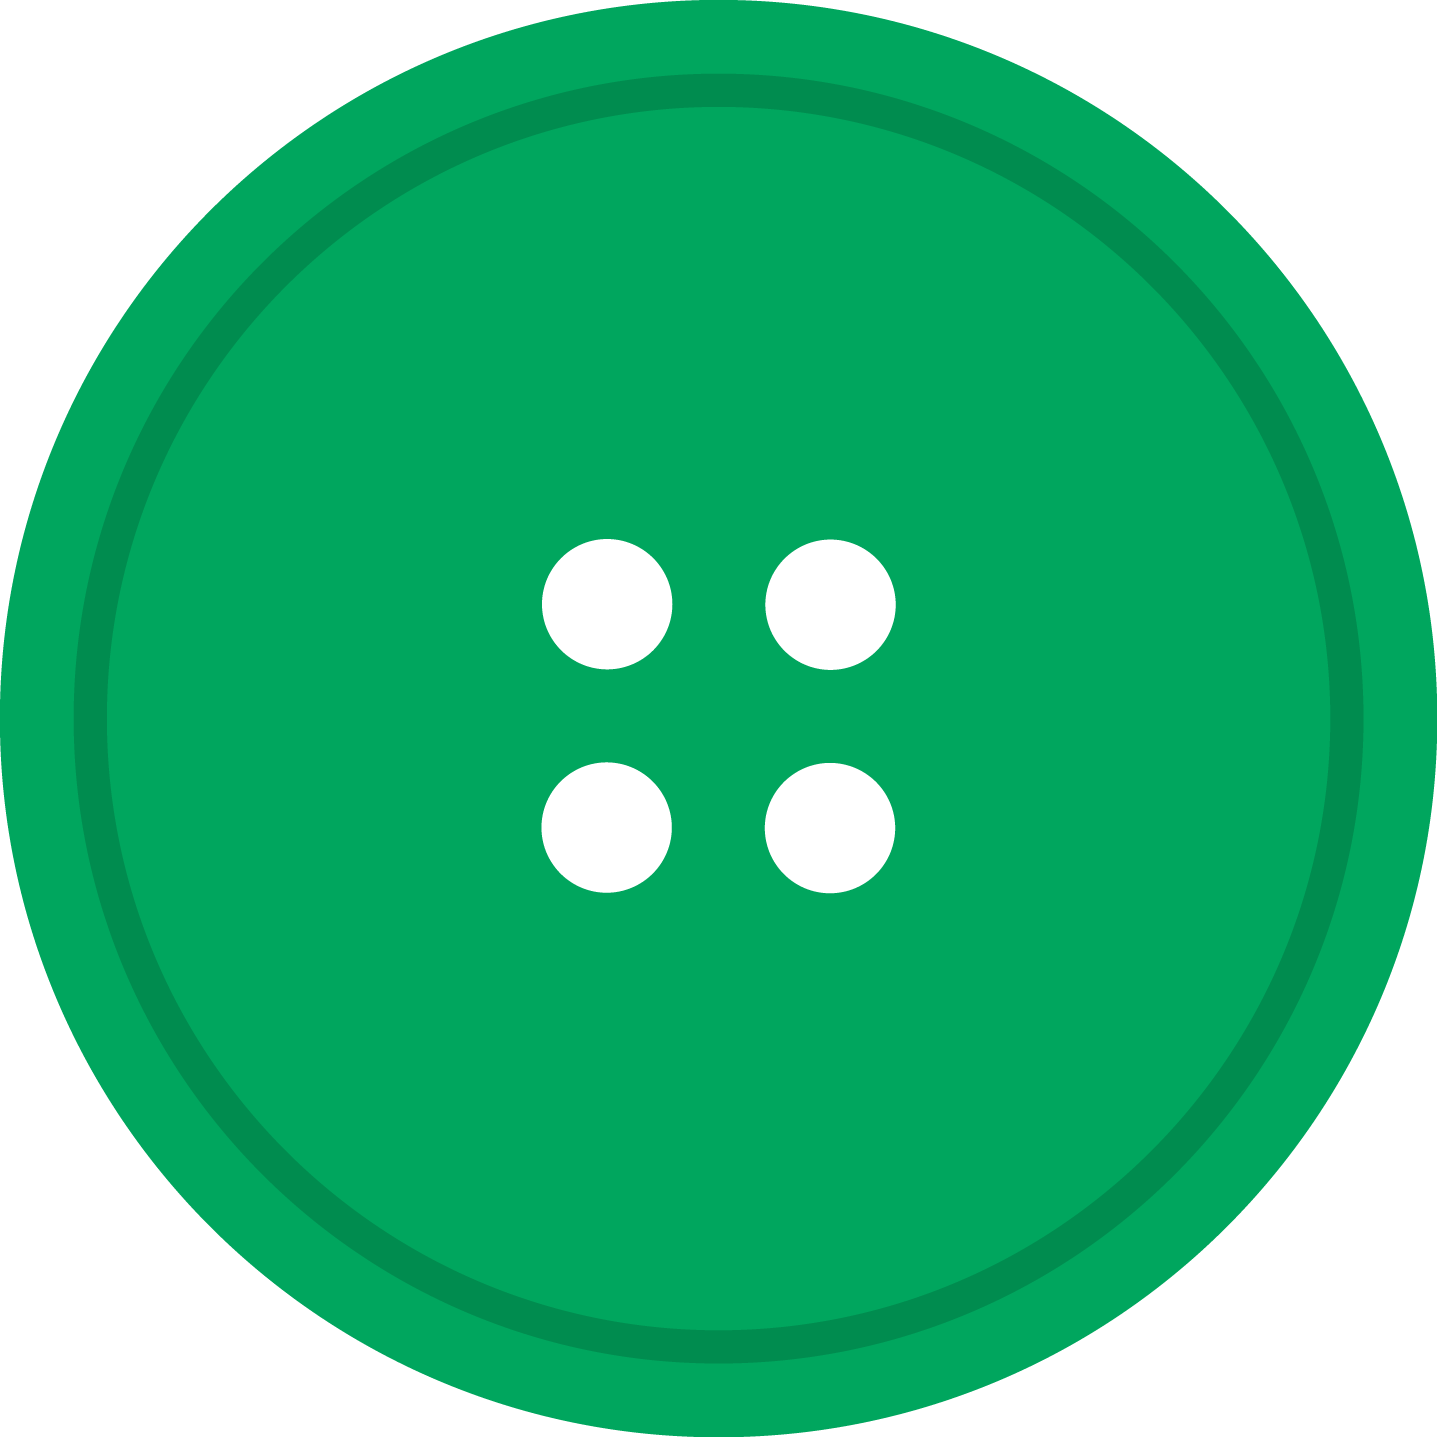 Green button clipart clip art freeuse library Greent Round Button PNG Image - PurePNG | Free transparent CC0 PNG ... clip art freeuse library